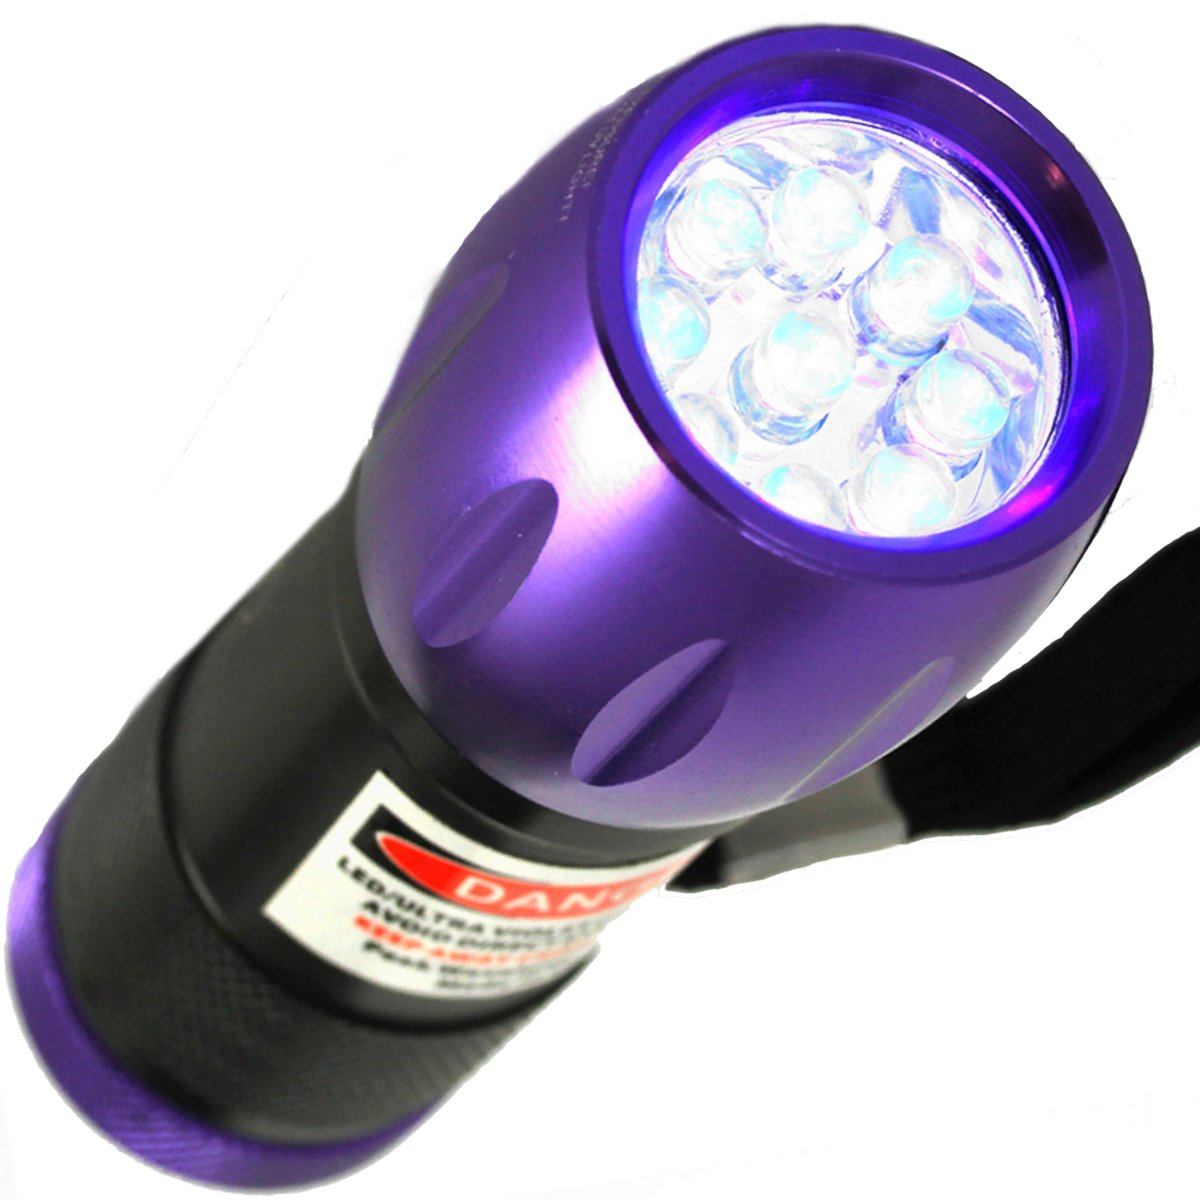 UV LED Ultraviolet Blacklight Emergency Flashlight for Scorpions, Urine, Counterfeit, Stains, Germicidal, Auto Leaks, Hunting, Antiques, Forensics, Camping and more. Finds the Invisible and Makes It Known.